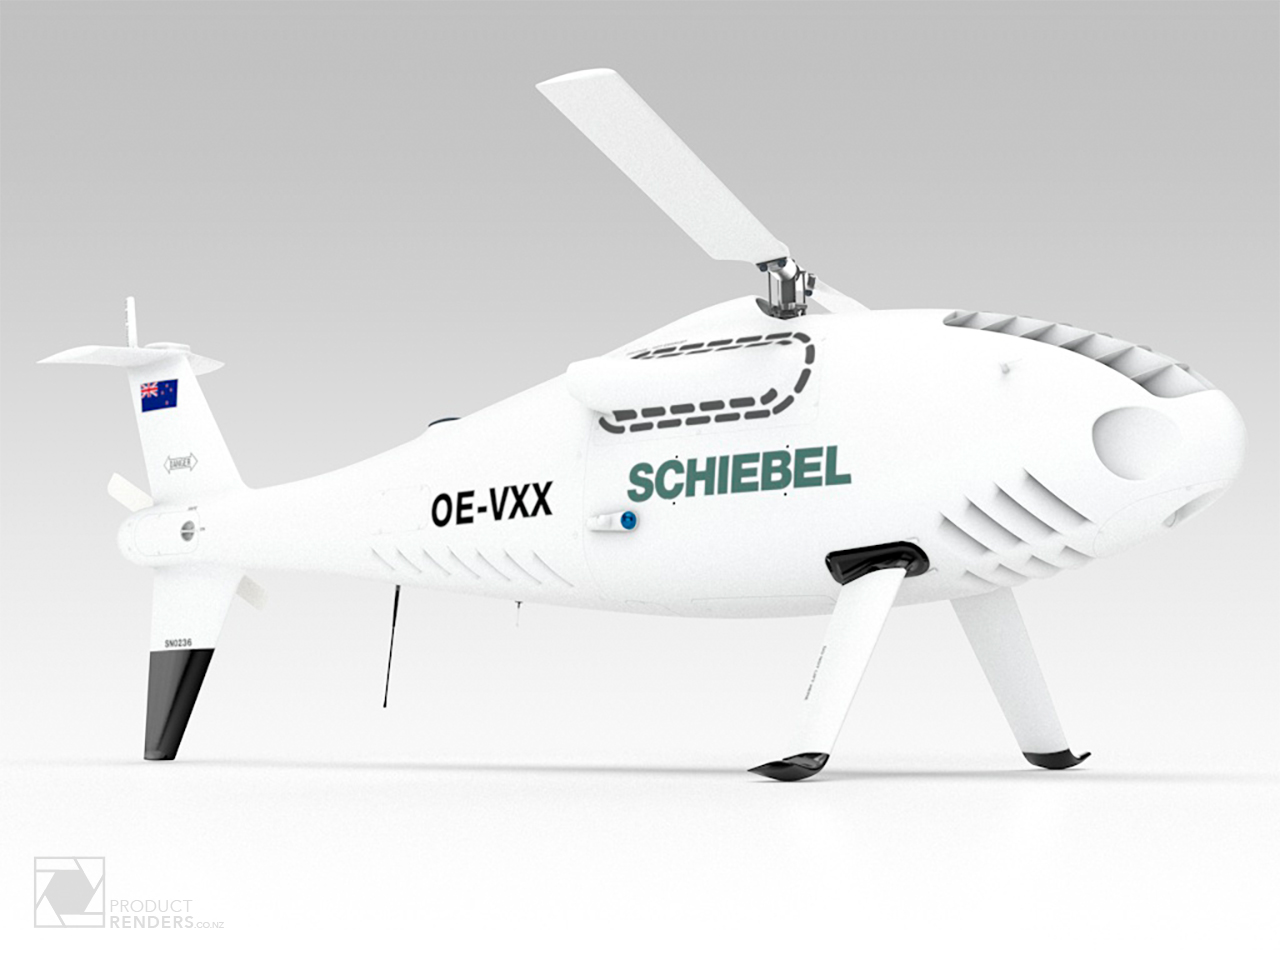 3D render of a Schiebel S-100 Camcopter